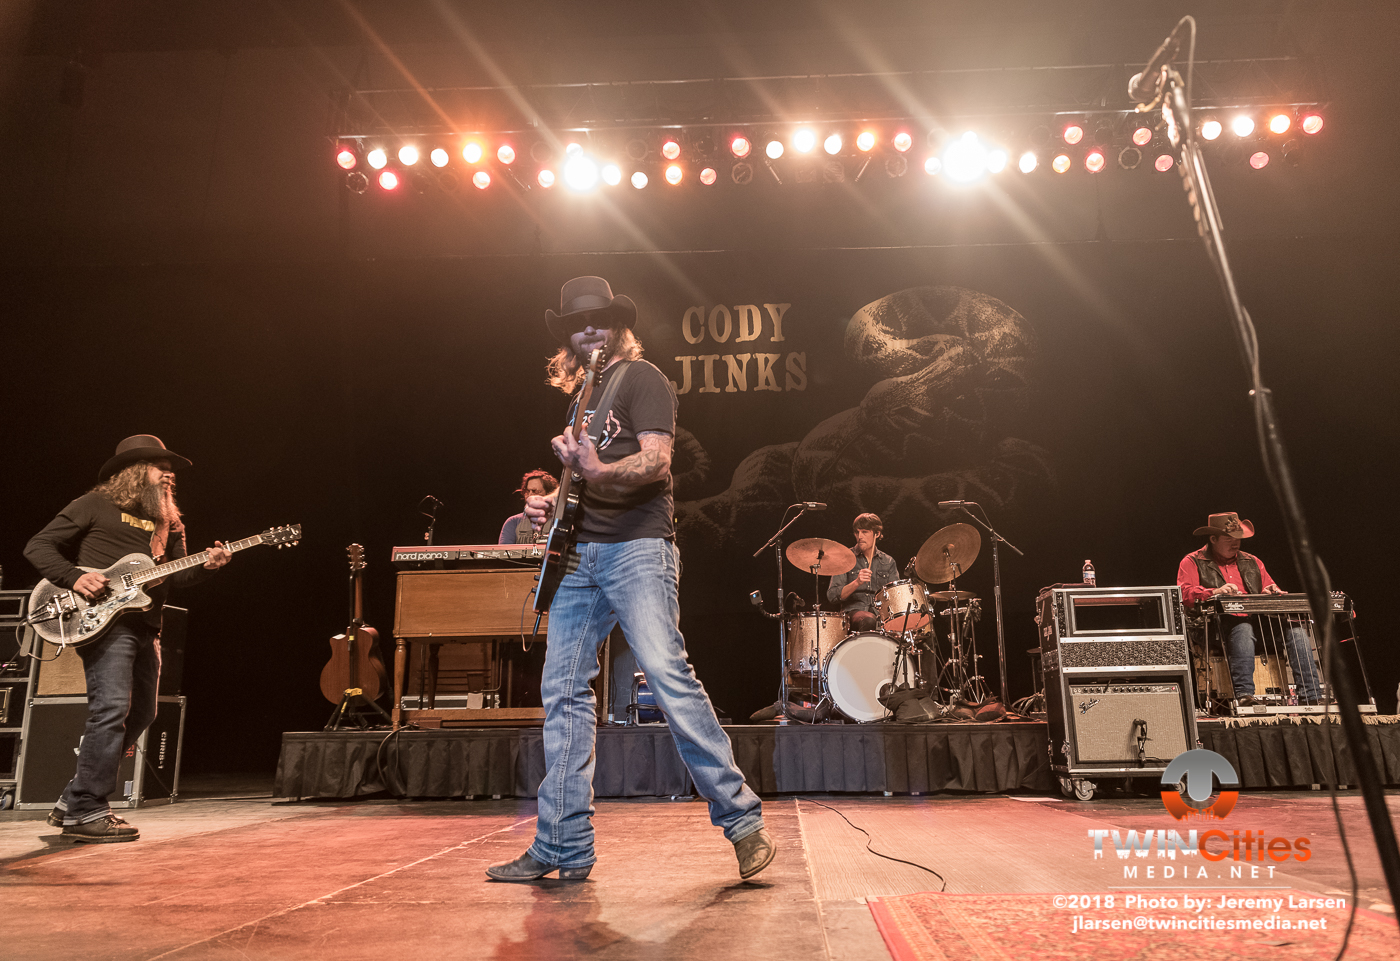 Cody-Jinks-Verizon-Grand-Hall-3-22-19-13